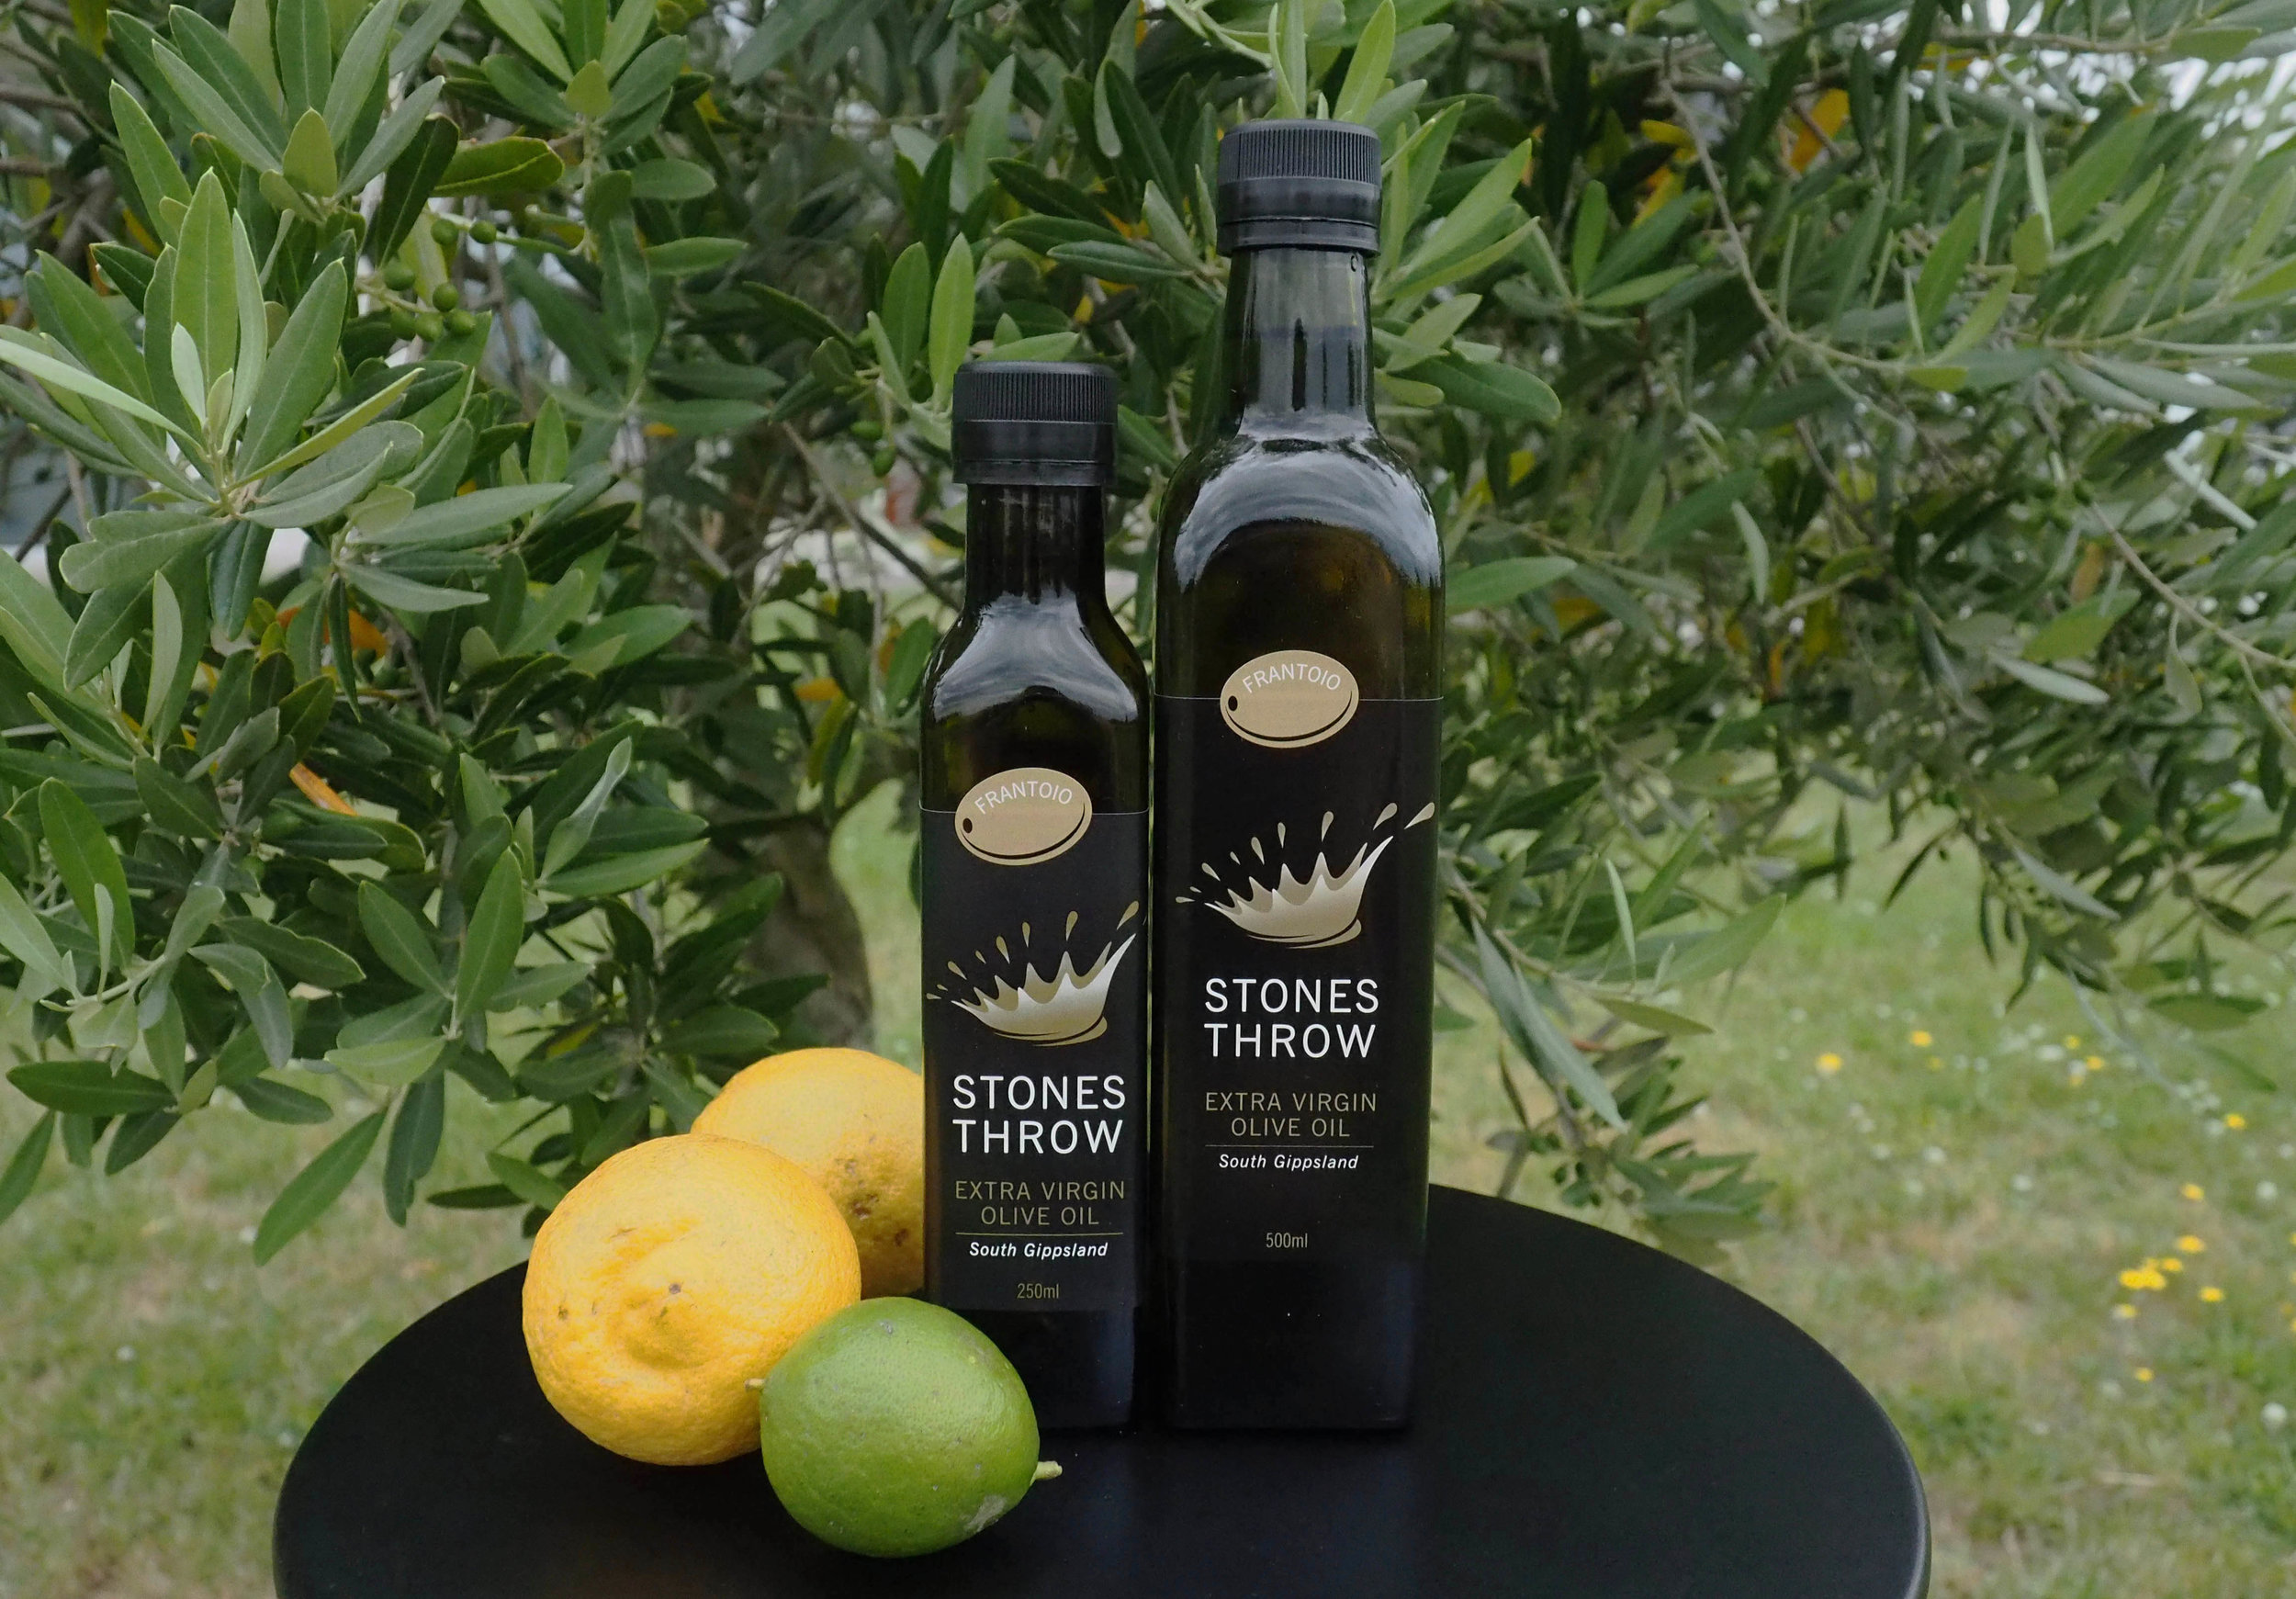 FRANTOIO  Frantoio is a famous Tuscan olive variety. Our 2017 is grassy green in colour, fresh and finely balanced with a spicy citrus flavour and a warm, lasting finish.